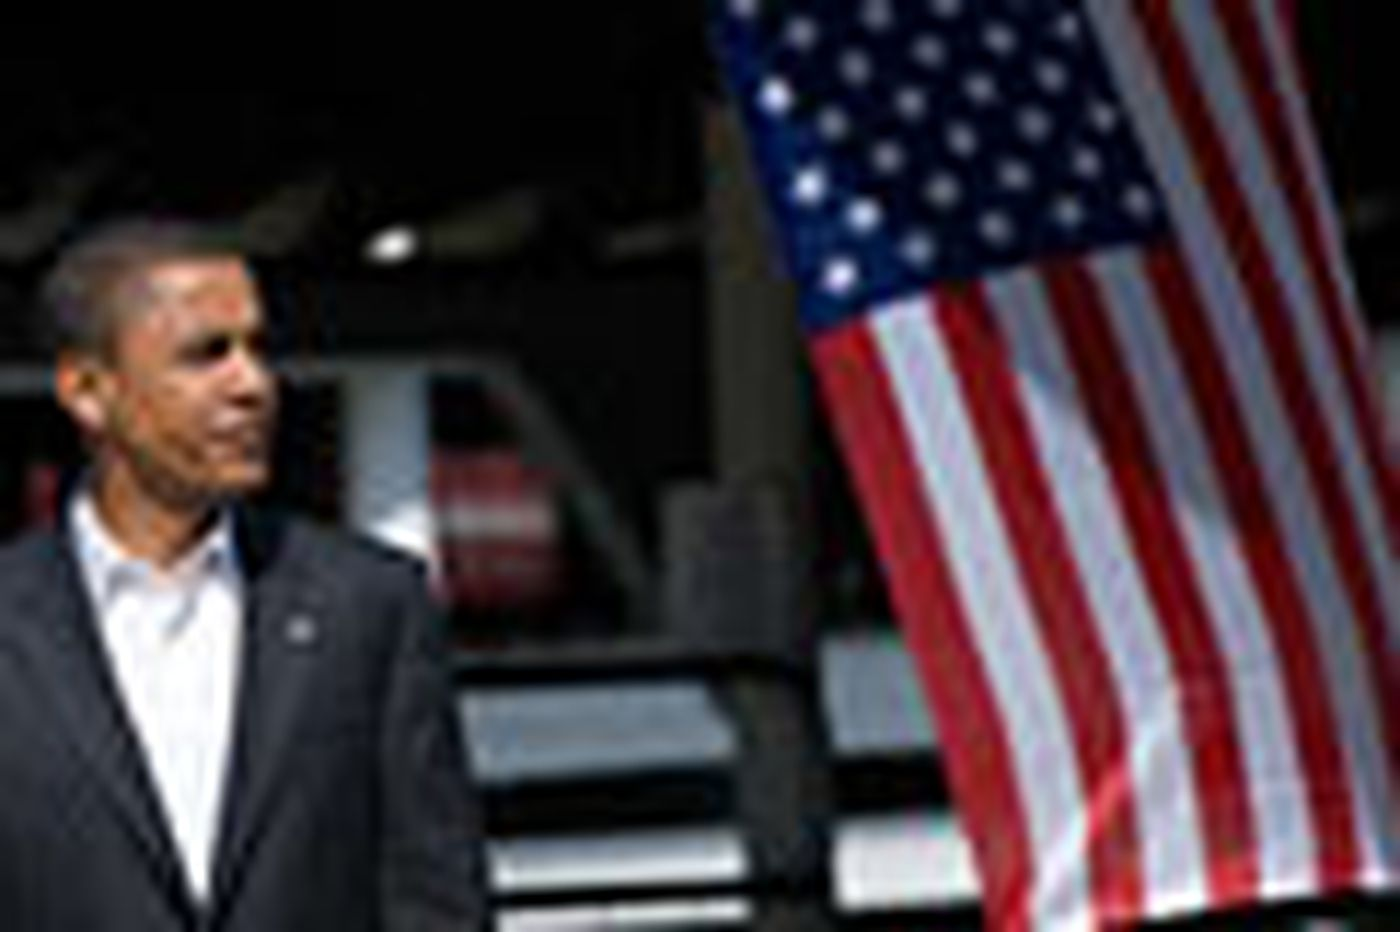 The American Debate: It's little discussed, but Obama's race may be decider